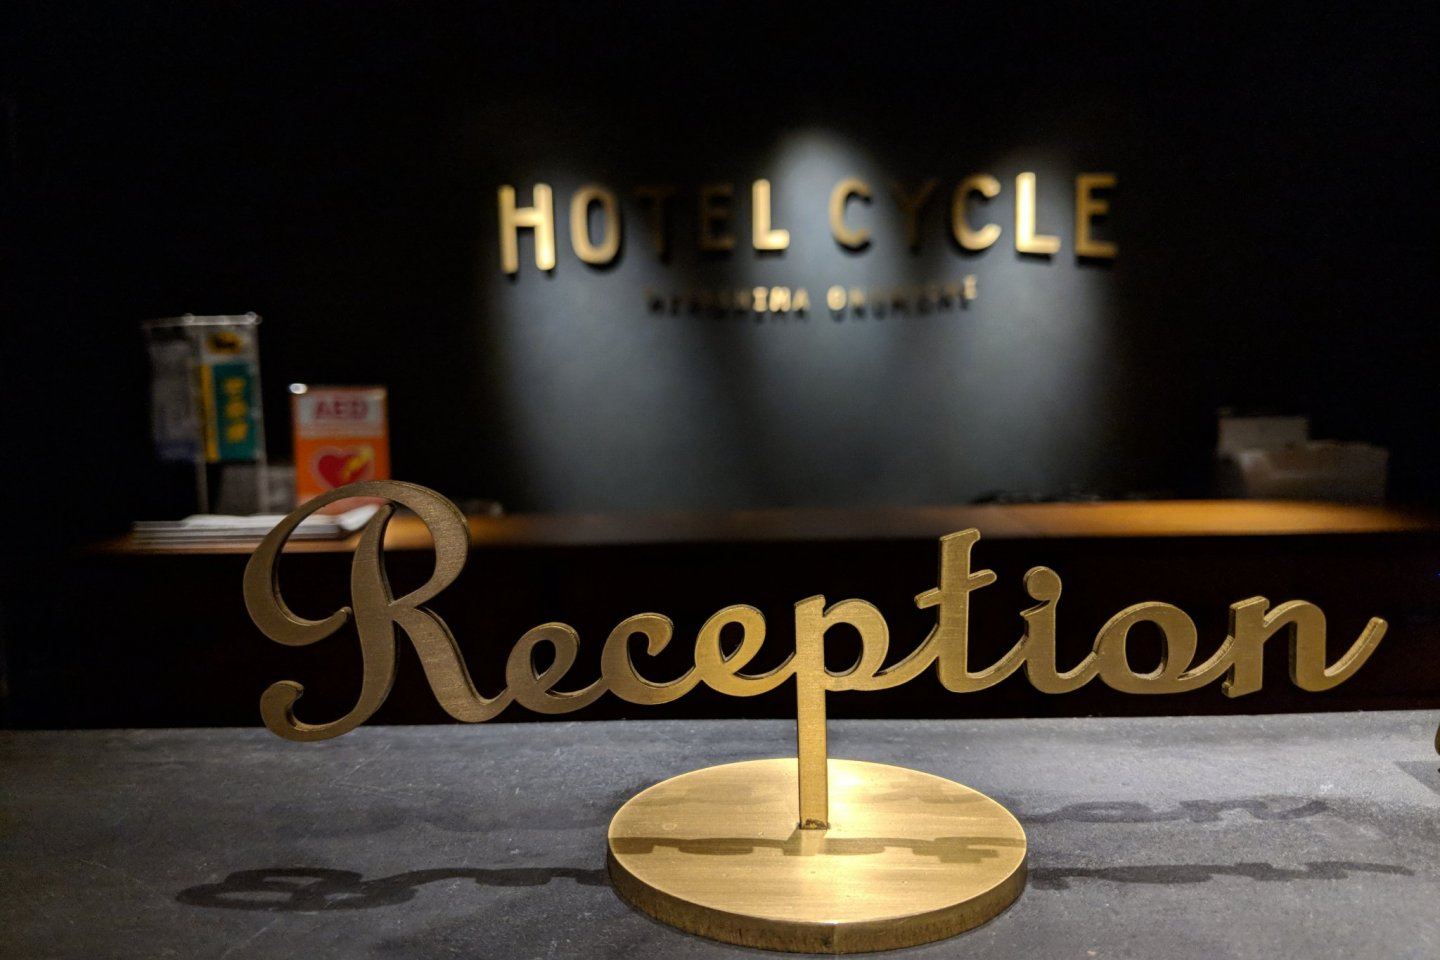 A warm welcome awaits at the reception desk.